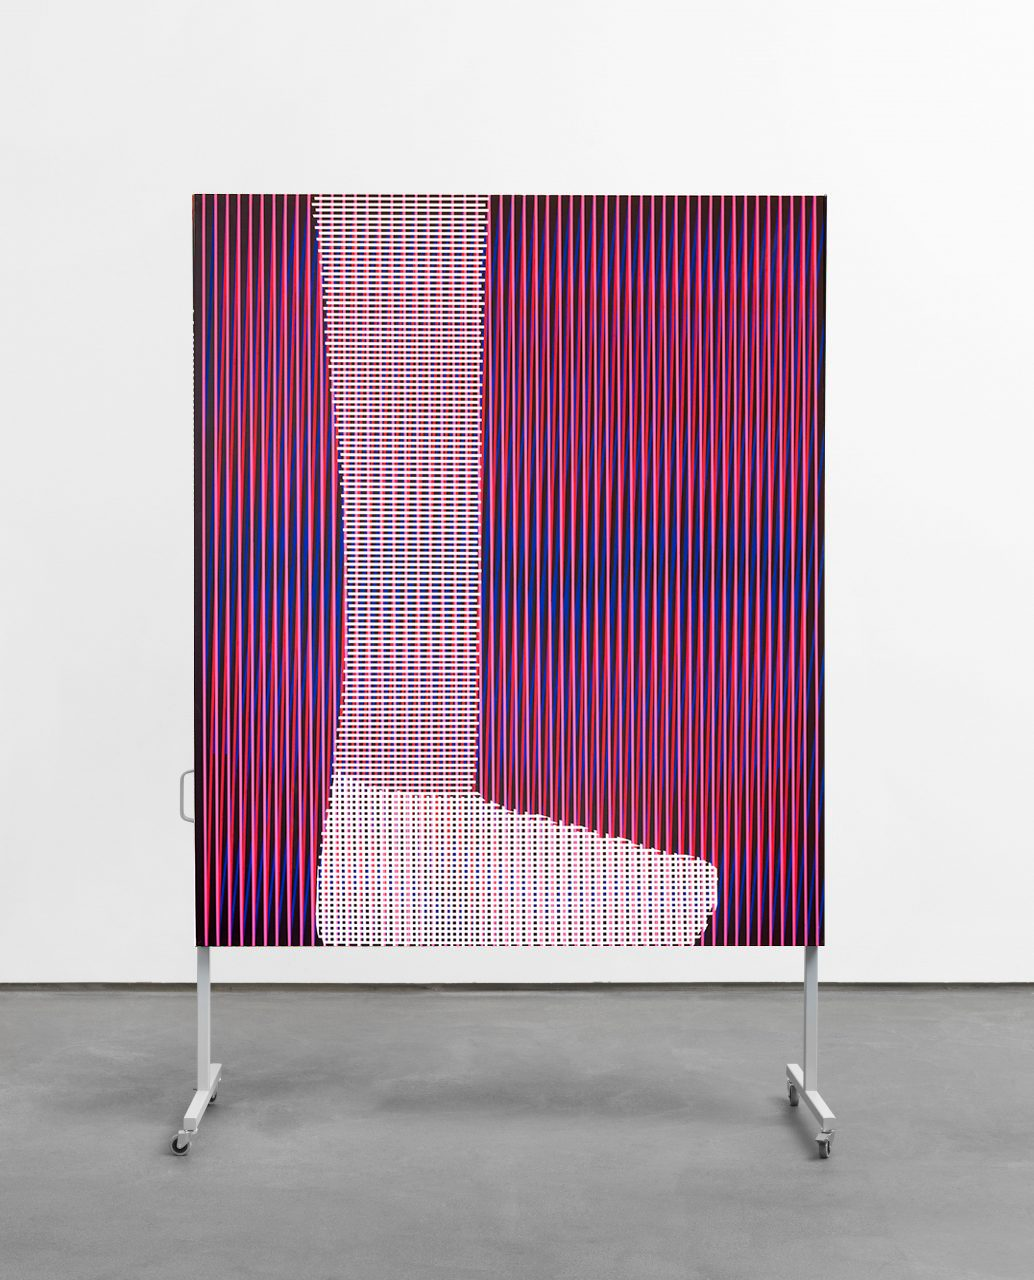 untitled (body color space), 2018 /// acrylic on canvas on metal rack /// 245 x 155 x 60 cm